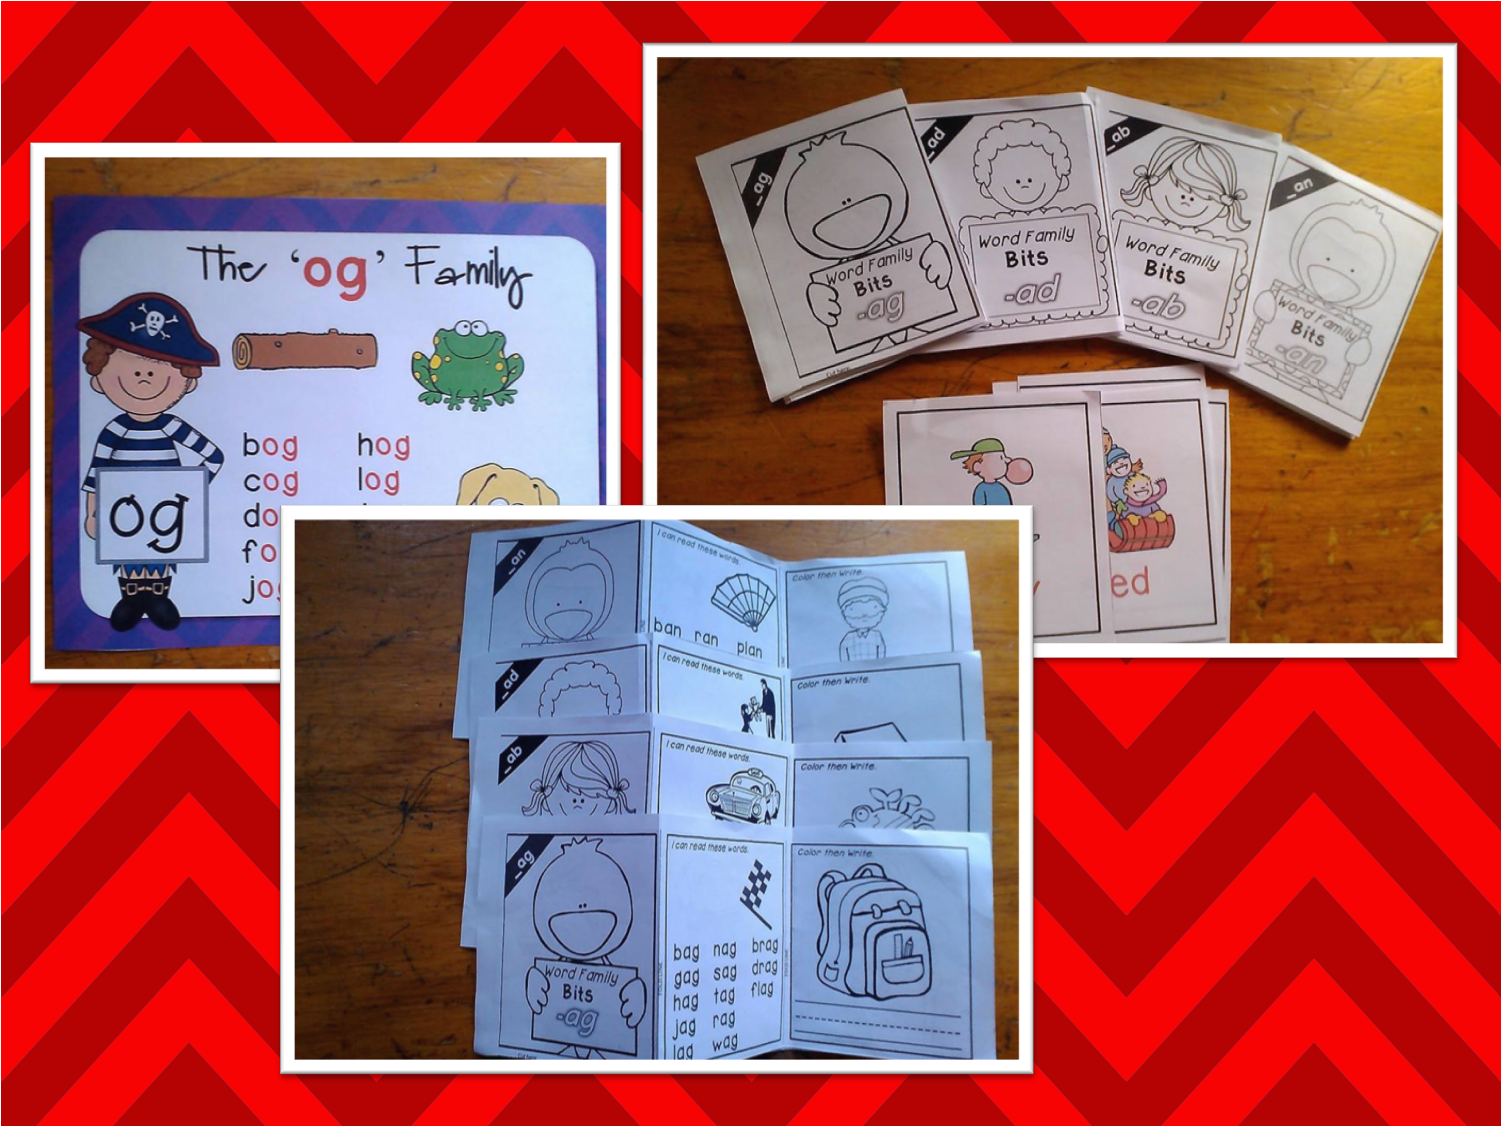 http://www.teacherspayteachers.com/Product/21-Word-Family-Trifold-Mini-Book-Bits-with-Posters-and-Picture-Cards-1145194